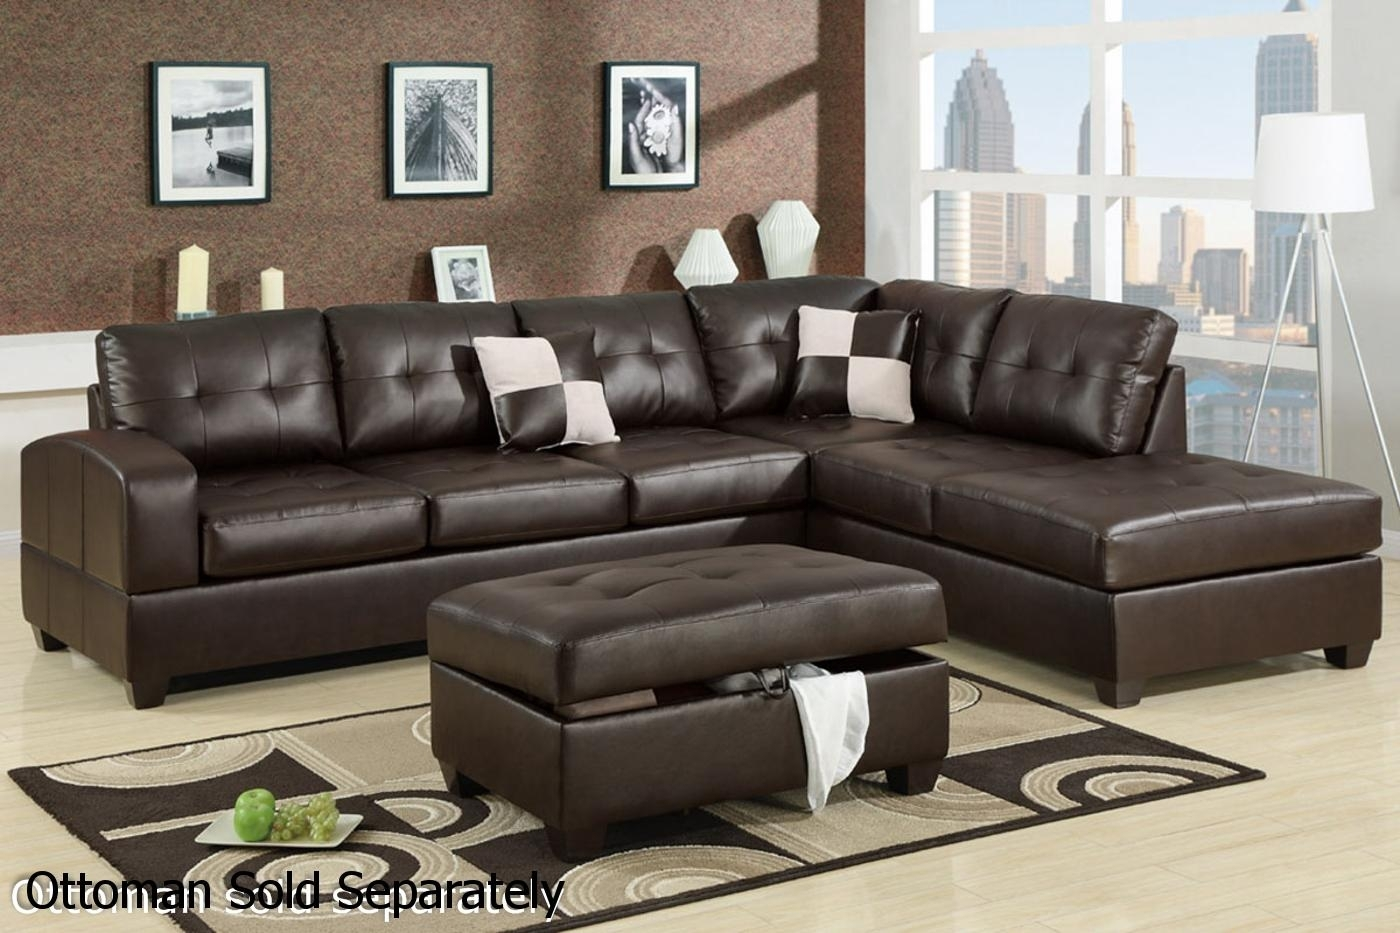 Brown Leather Sectional Sofa – Steal A Sofa Furniture Outlet Los For Leather Sectional Sofas (View 3 of 10)